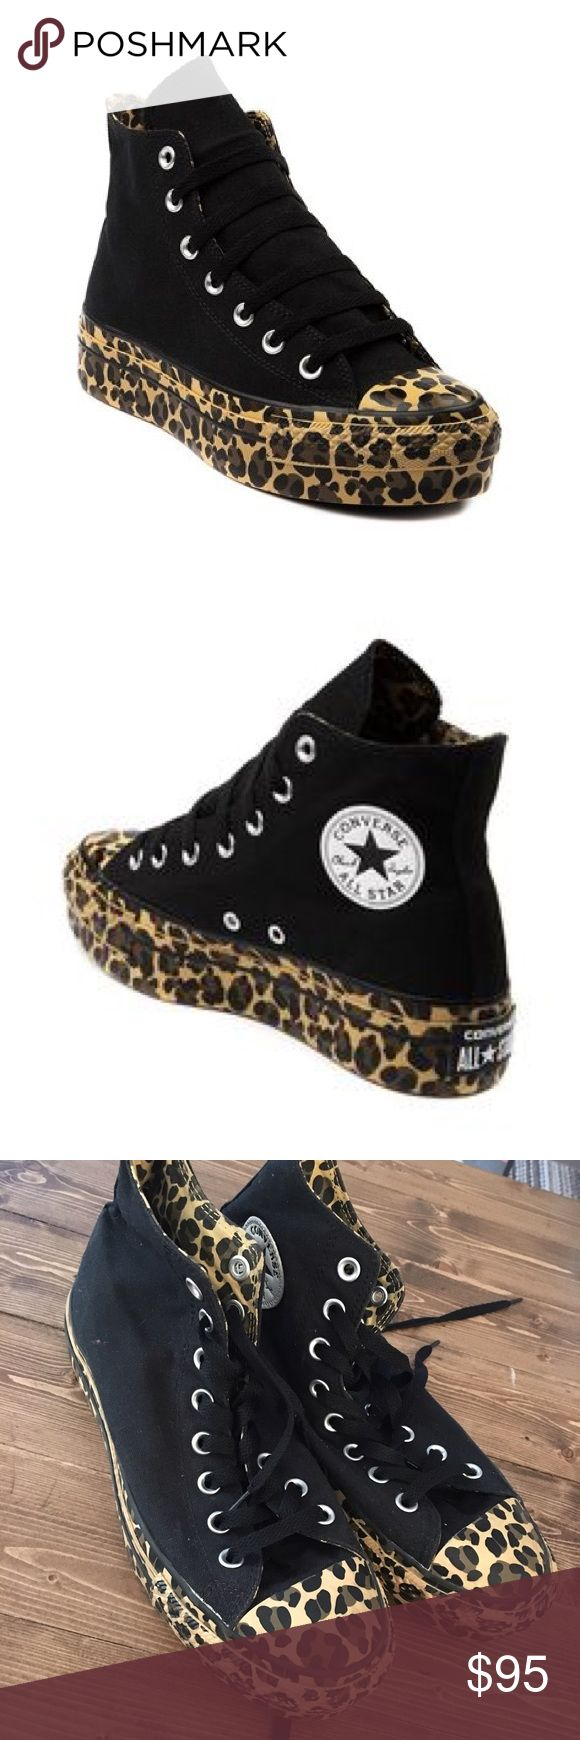 Converse All Star Chuck Taylor High Top Platforms Black high top sneakers with leopard platform soles. Inner lining is leopard as well. Slight wear on the leopard sole and the front of shoe (in pictures) but you can't really tell unless your looking for it. Men's size 7. Women's size 9. Euro size 40 Converse Shoes Sneakers